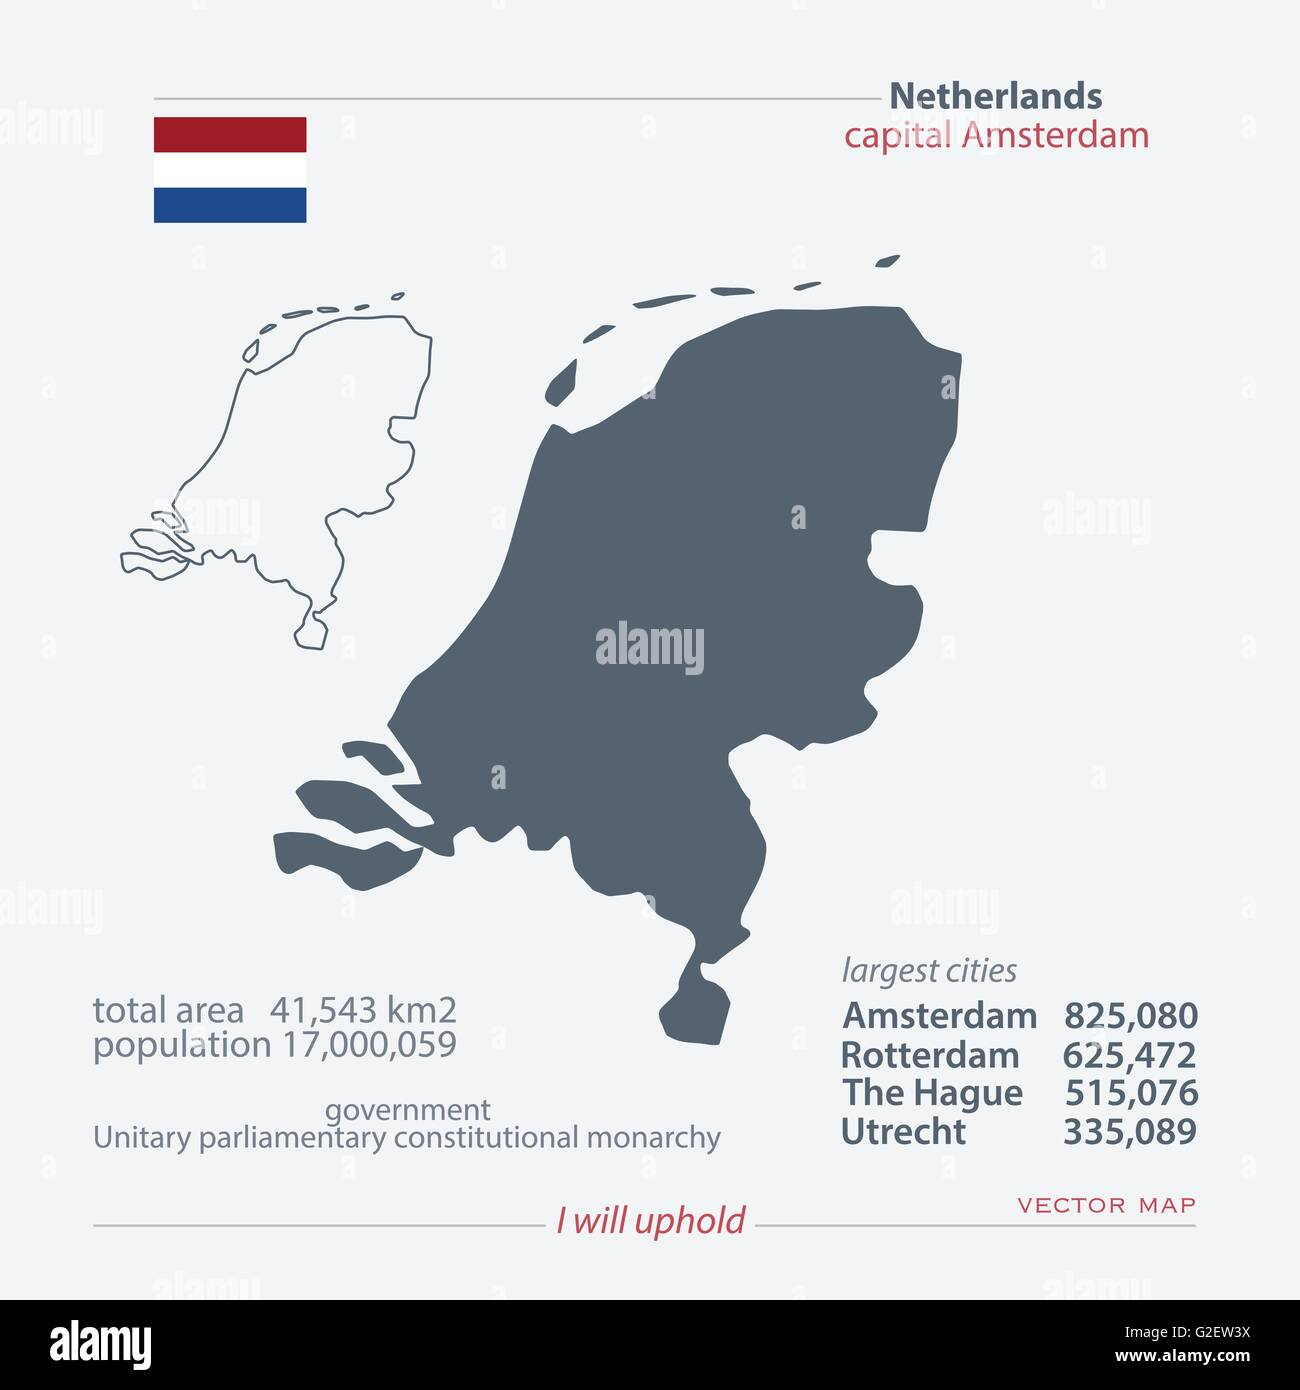 Kingdom of the Netherlands isolated maps and official flag icon. vector Dutch political map icons with general information. - Stock Vector